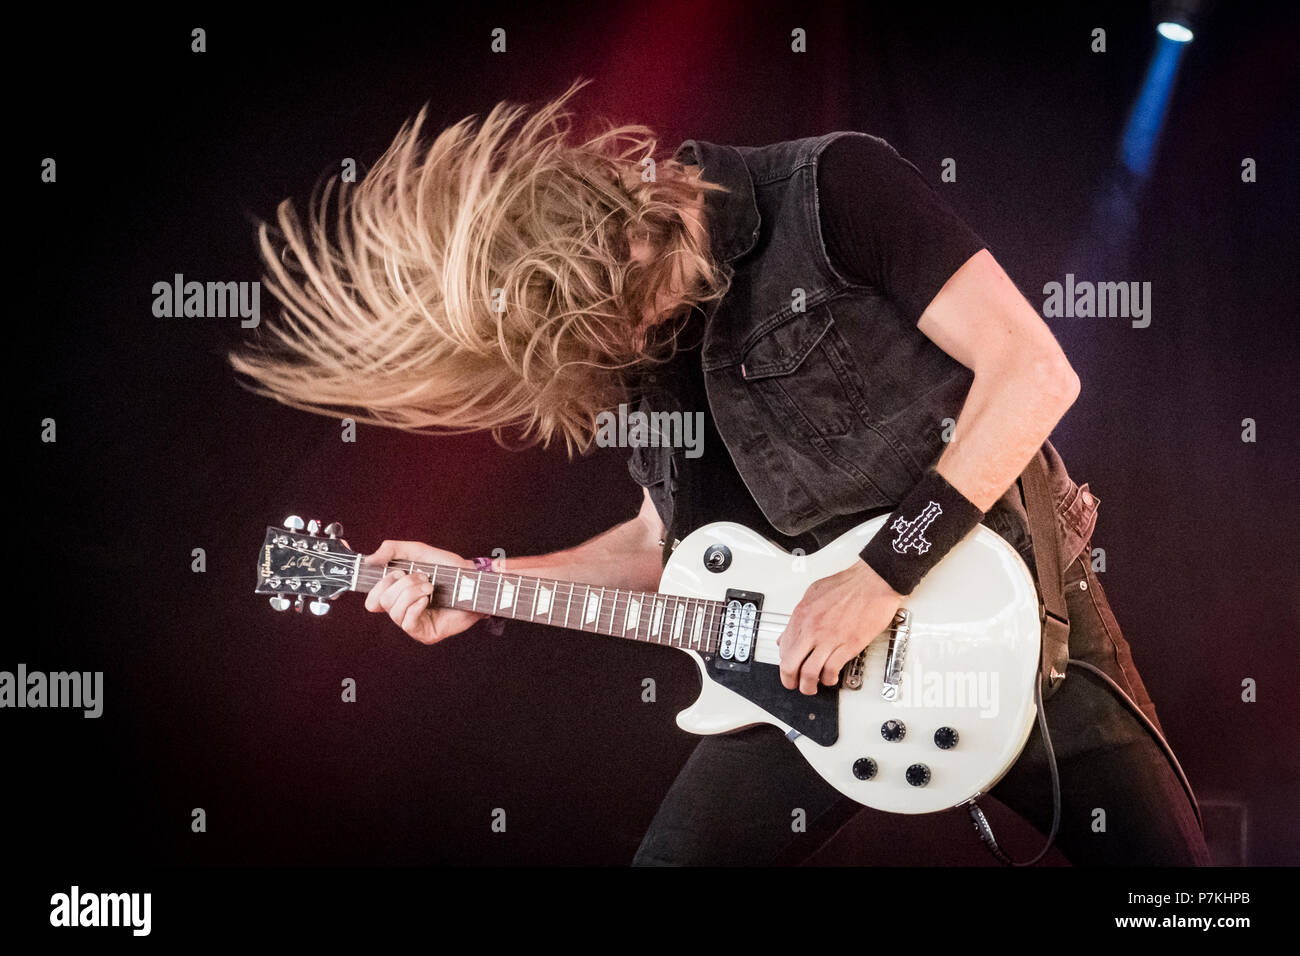 Roskilde, Denmark. 6th July 2018. The American extreme metal band Skeletonwitch performs a live concert at during the Danish music festival Roskilde Festival 2018. Here guitarist Scott Hedrick a.k.a. Scunty D is seen live on stage. (Photo credit: Gonzales Photo - Kim M. Leland). Credit: Gonzales Photo/Alamy Live News - Stock Image